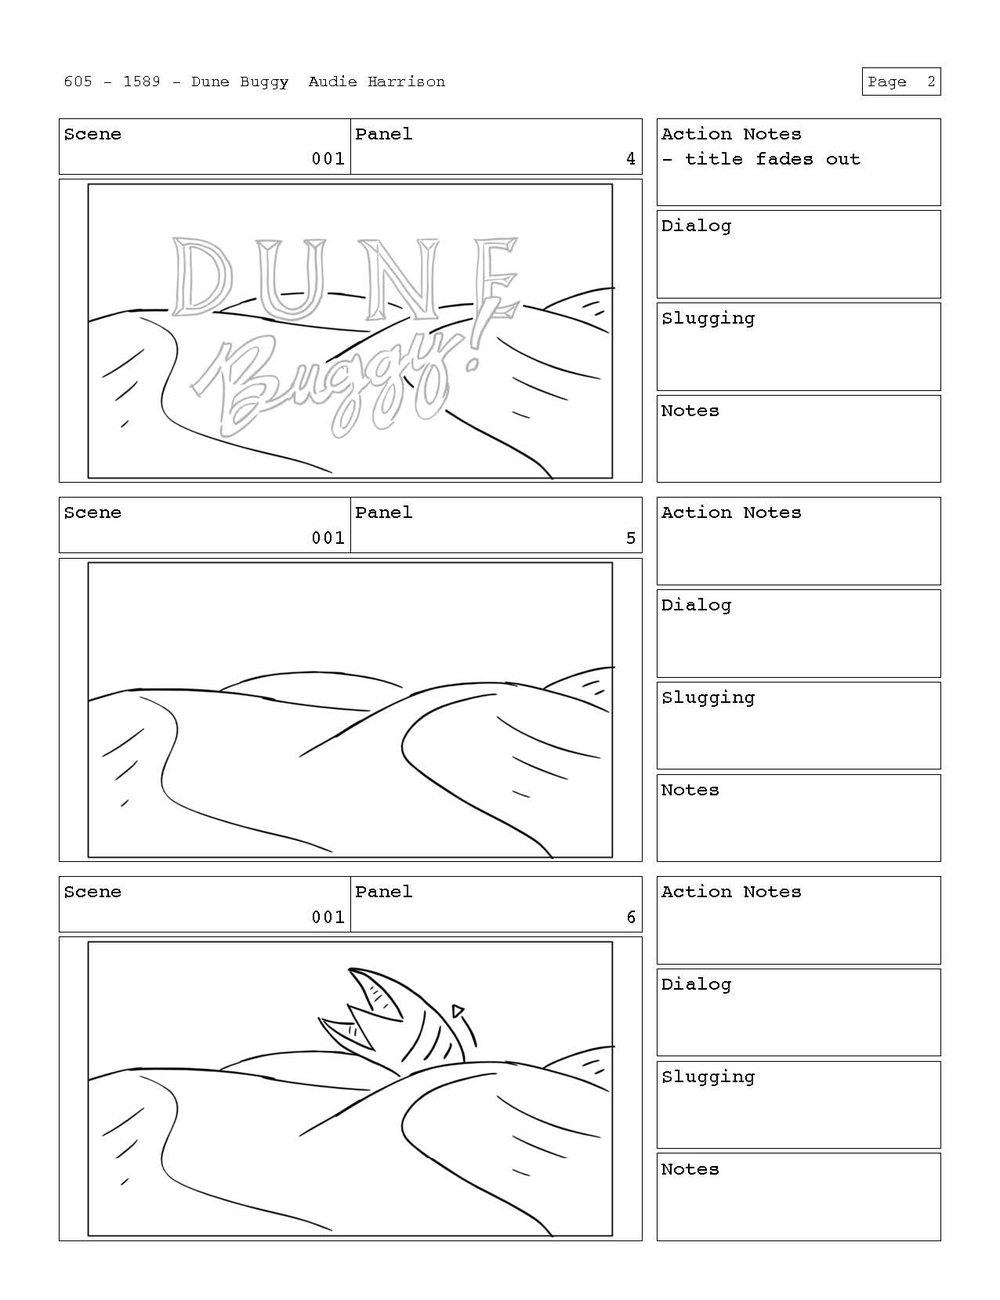 Dune_Buggy_Page_03.jpg